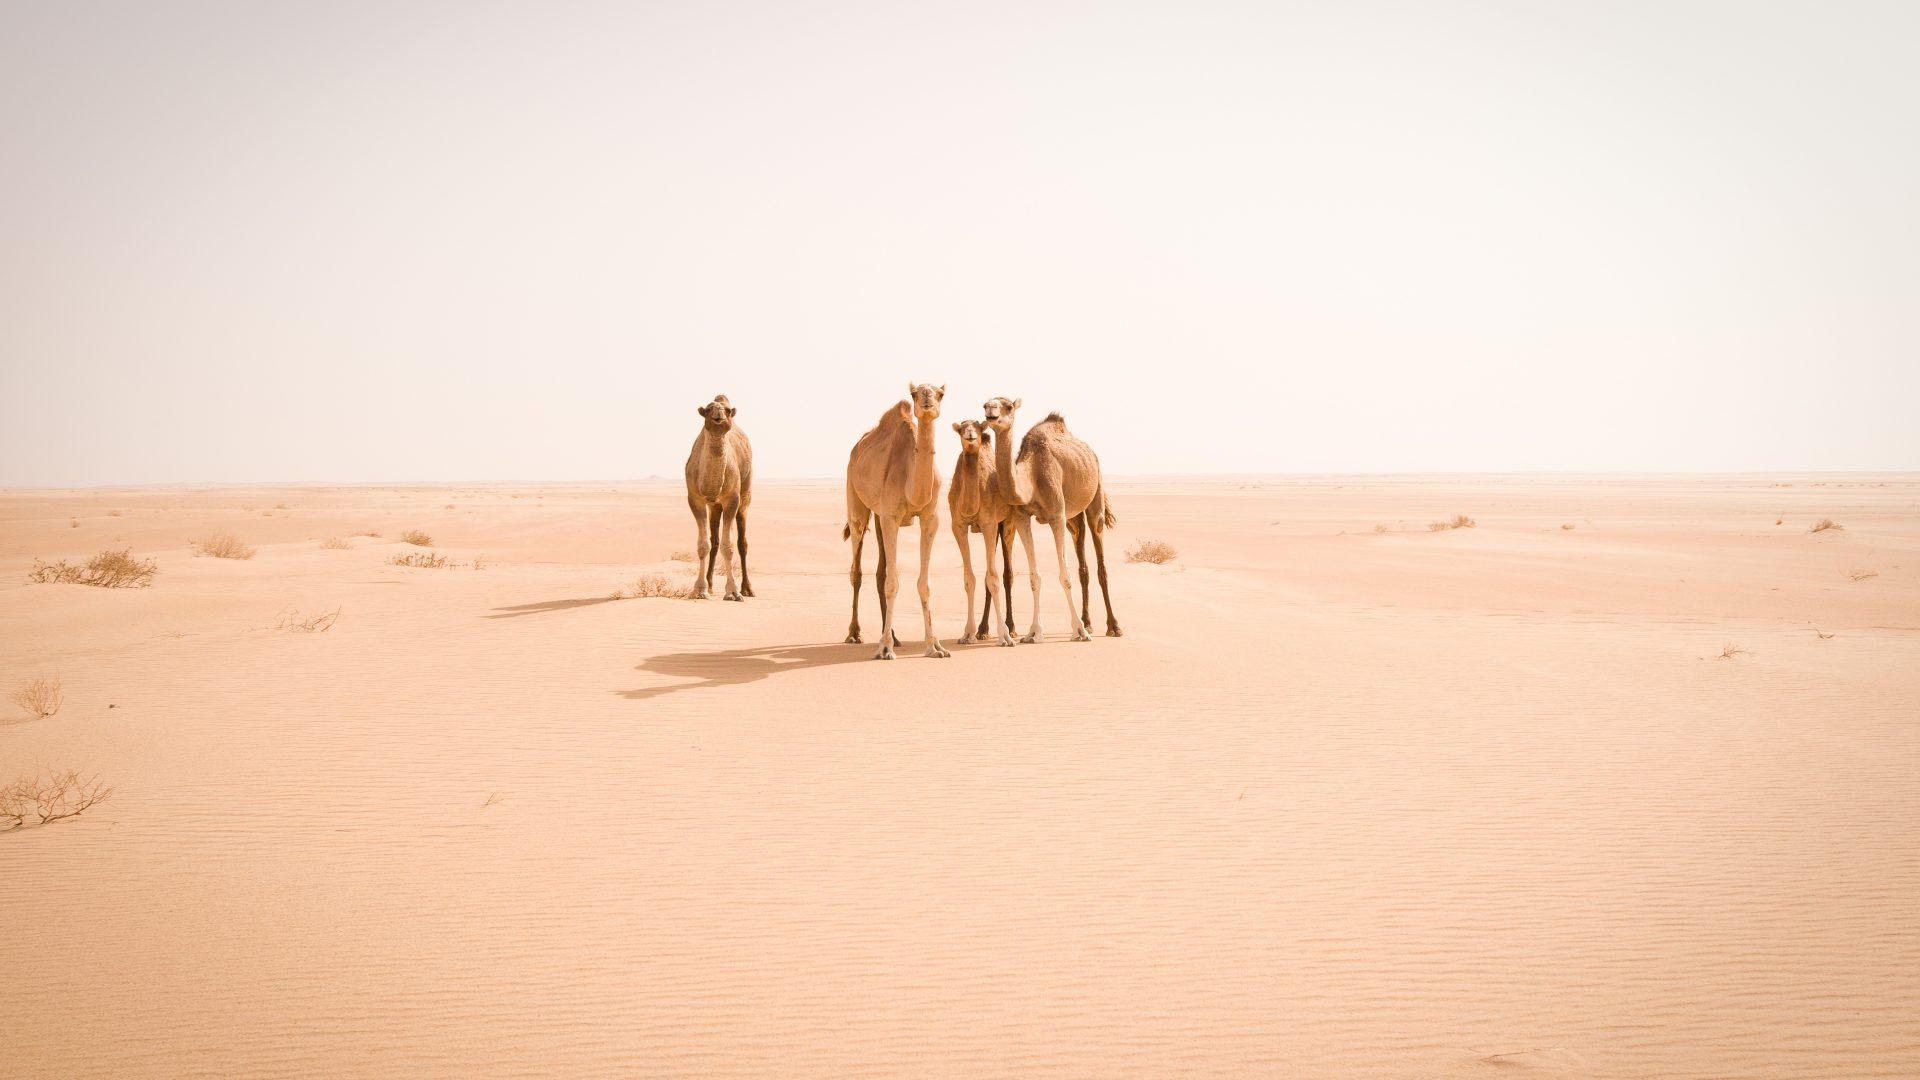 Curious wild camels stare at us in the middle of the Sahara desert.